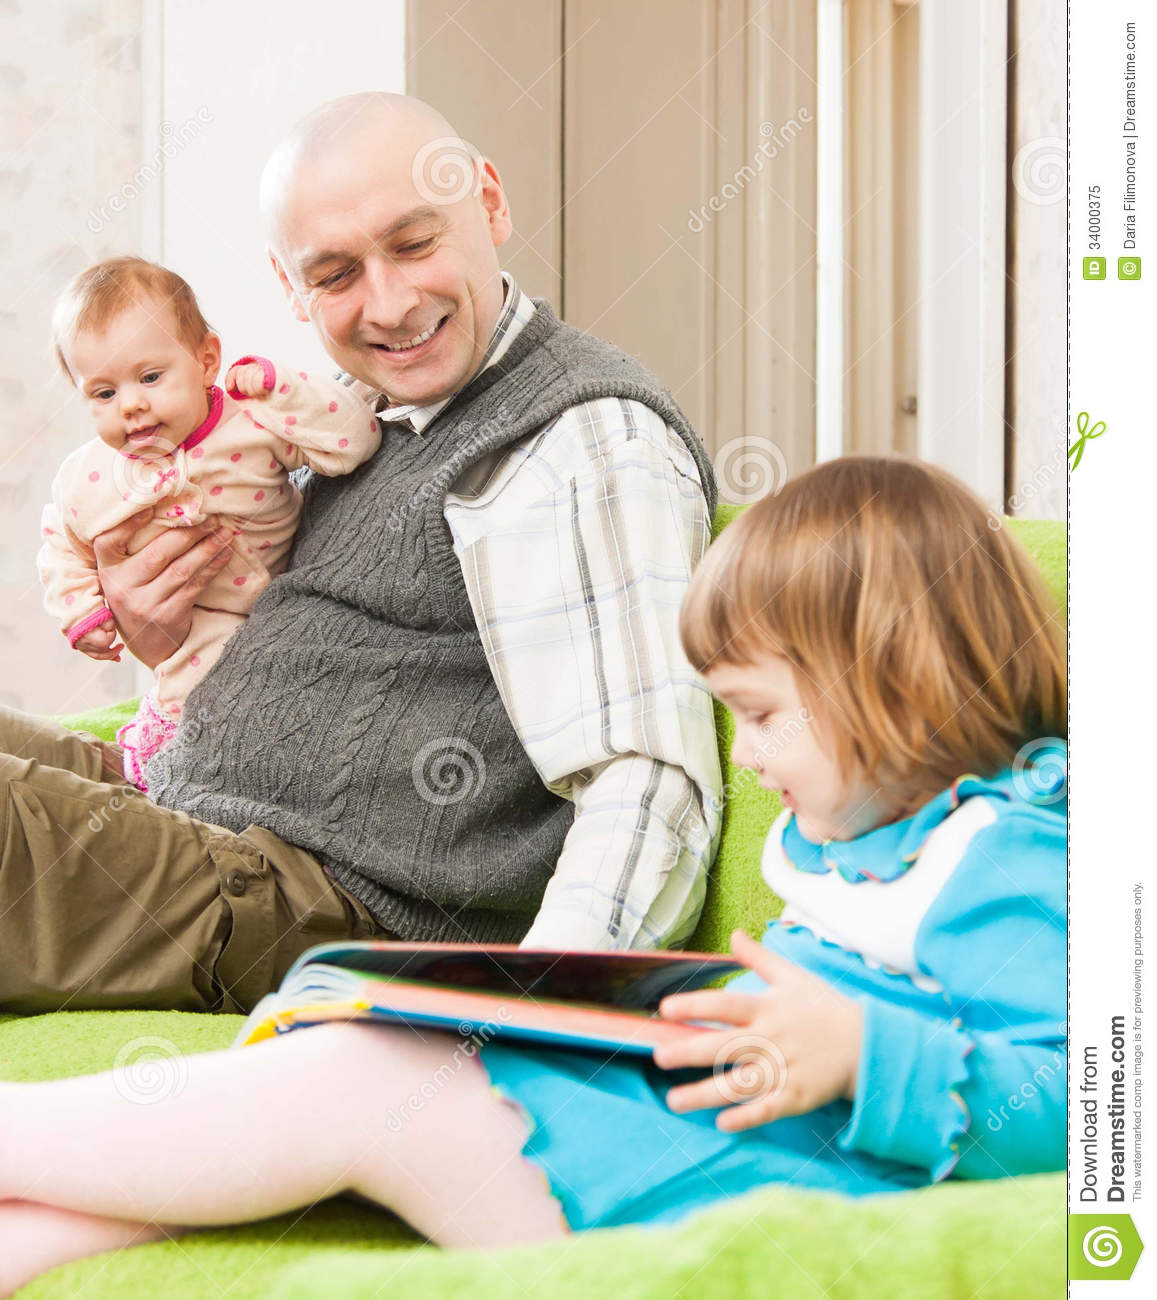 Happy Dad With Daughters Royalty Free Stock Photo - Image: 34000375